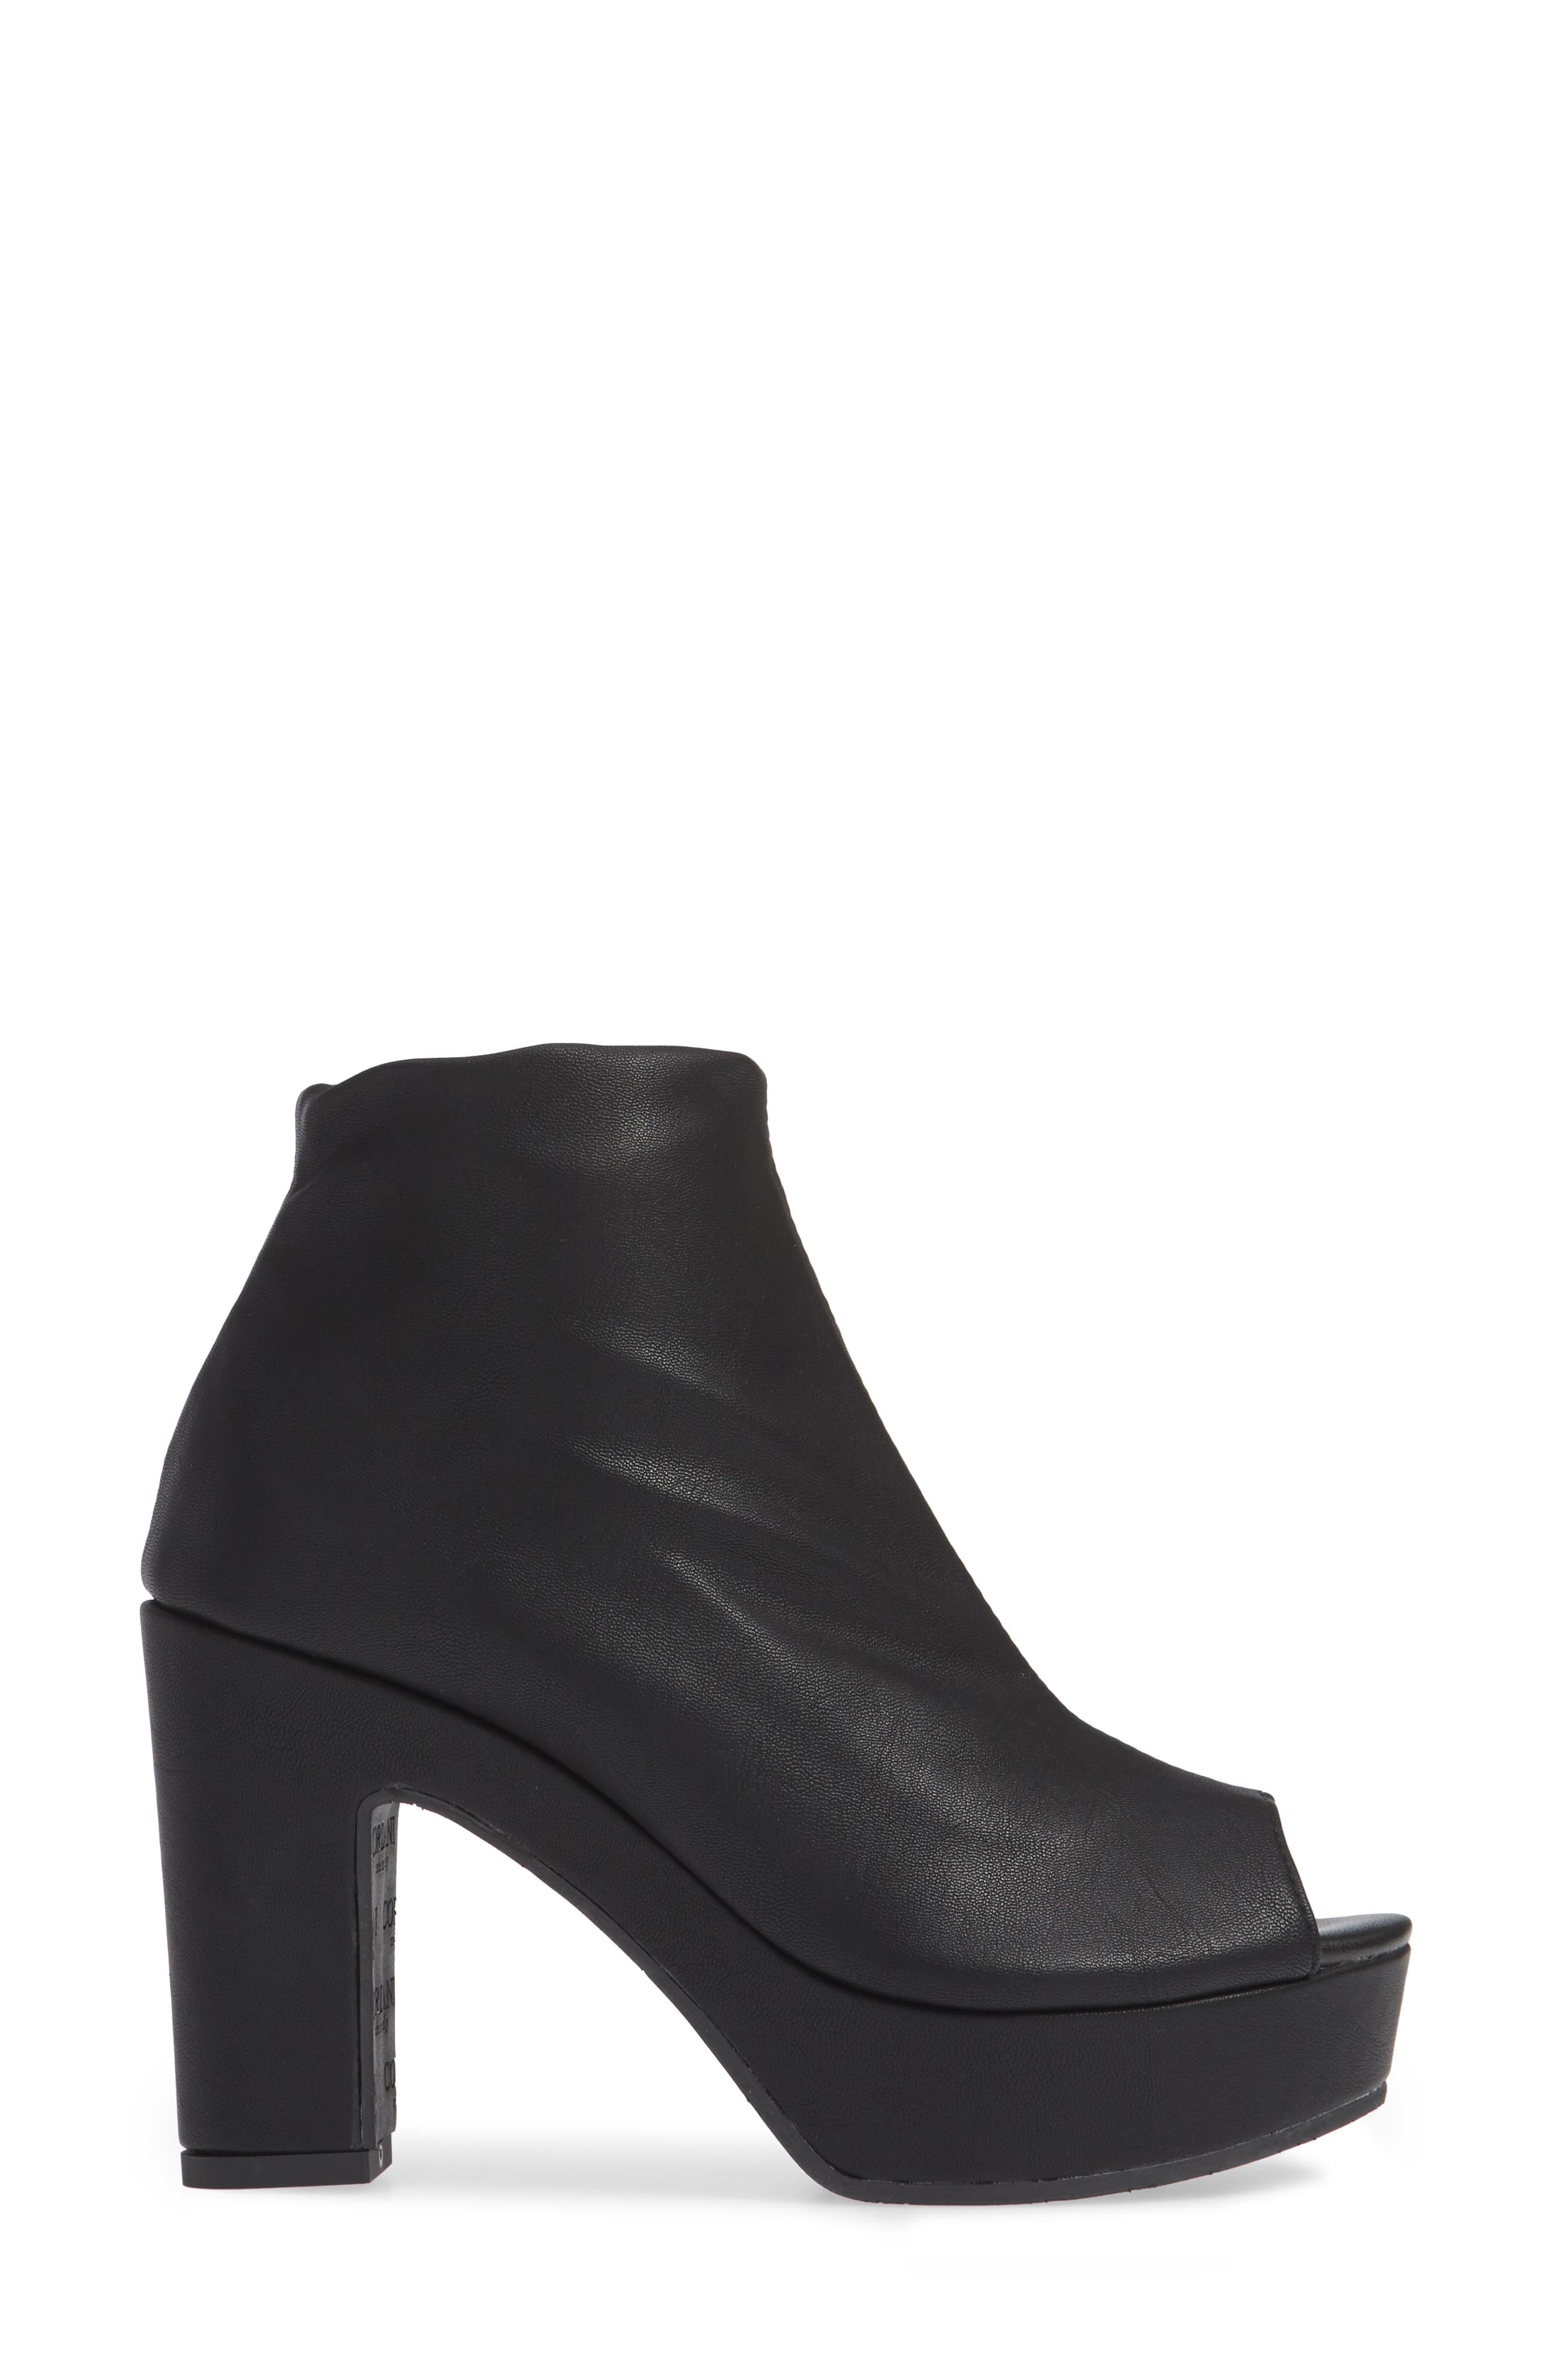 Tyra Peep Toe Platform Bootie,                             Alternate thumbnail 3, color,                             BLACK FABRIC